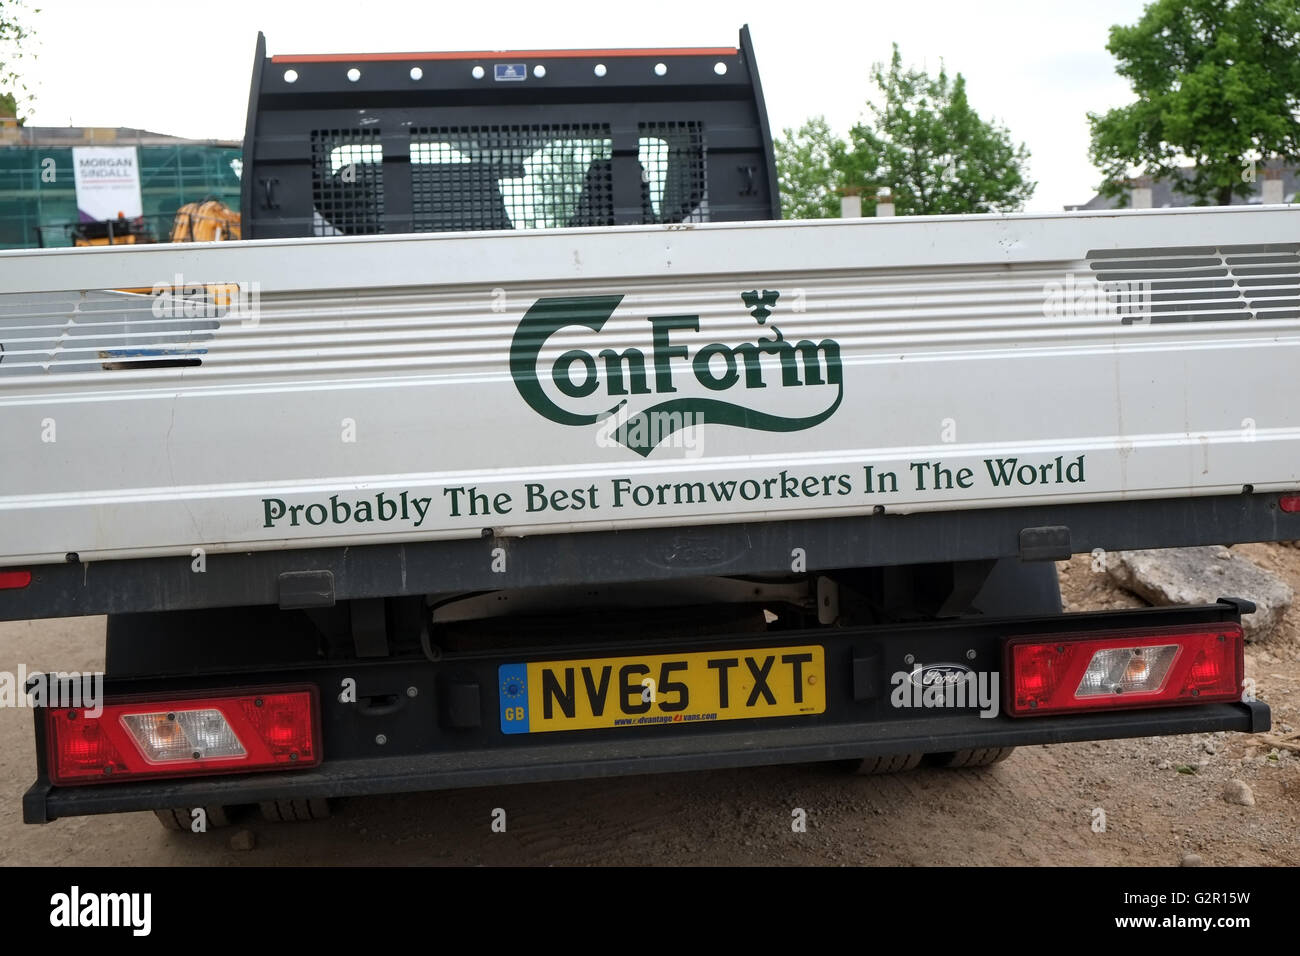 Probably the best builder ( Formworkers ) in the world sign on the back of a builders truck. June 2016 - Stock Image